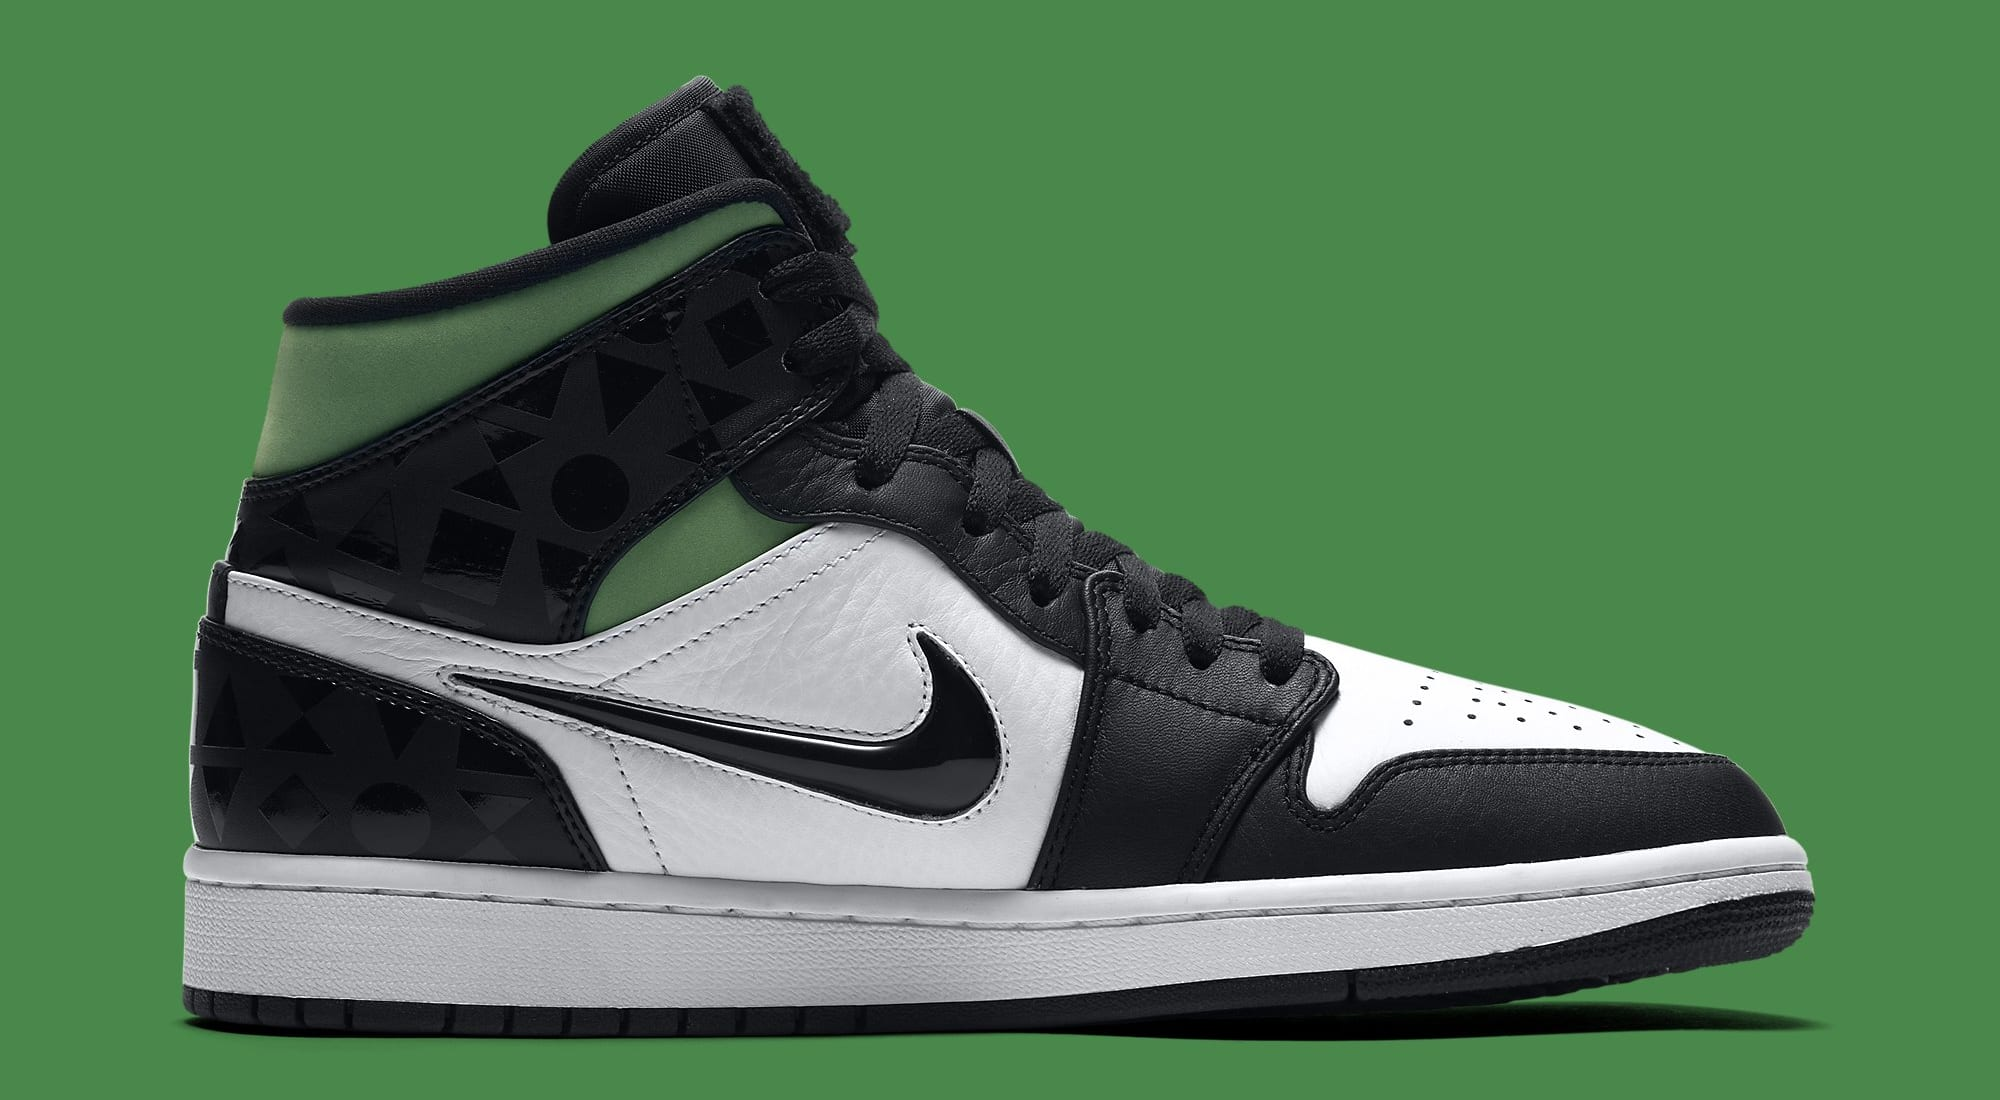 Air Jordan 1 Retro Mid 'Quai 54' CJ9219-001 Medial